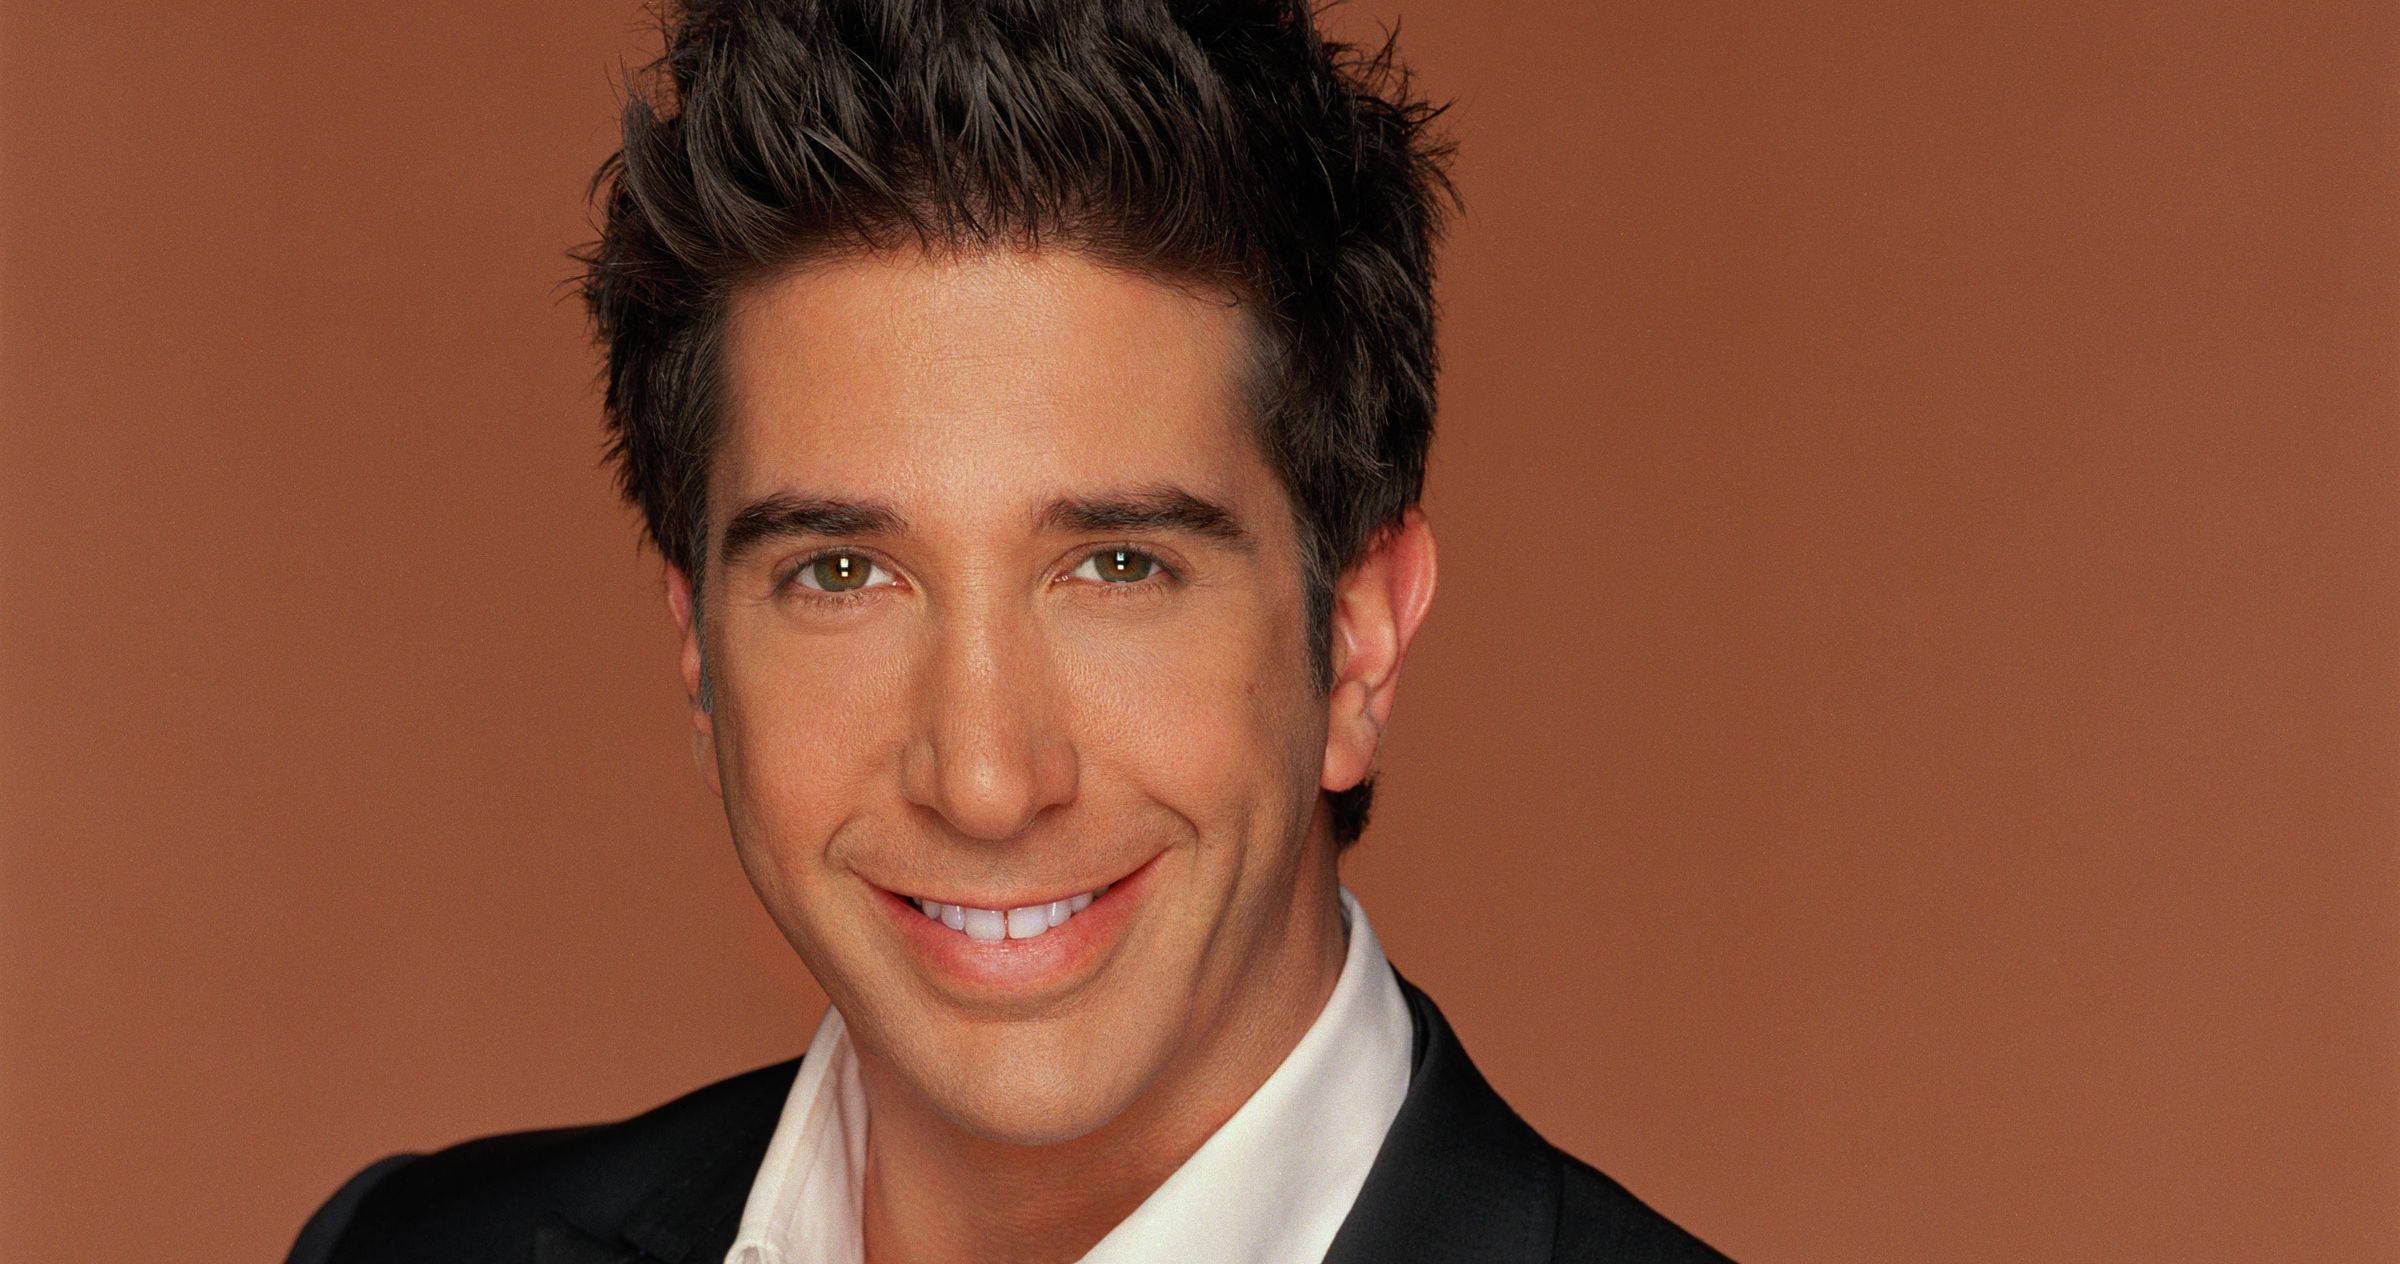 David Schwimmer Wallpaper